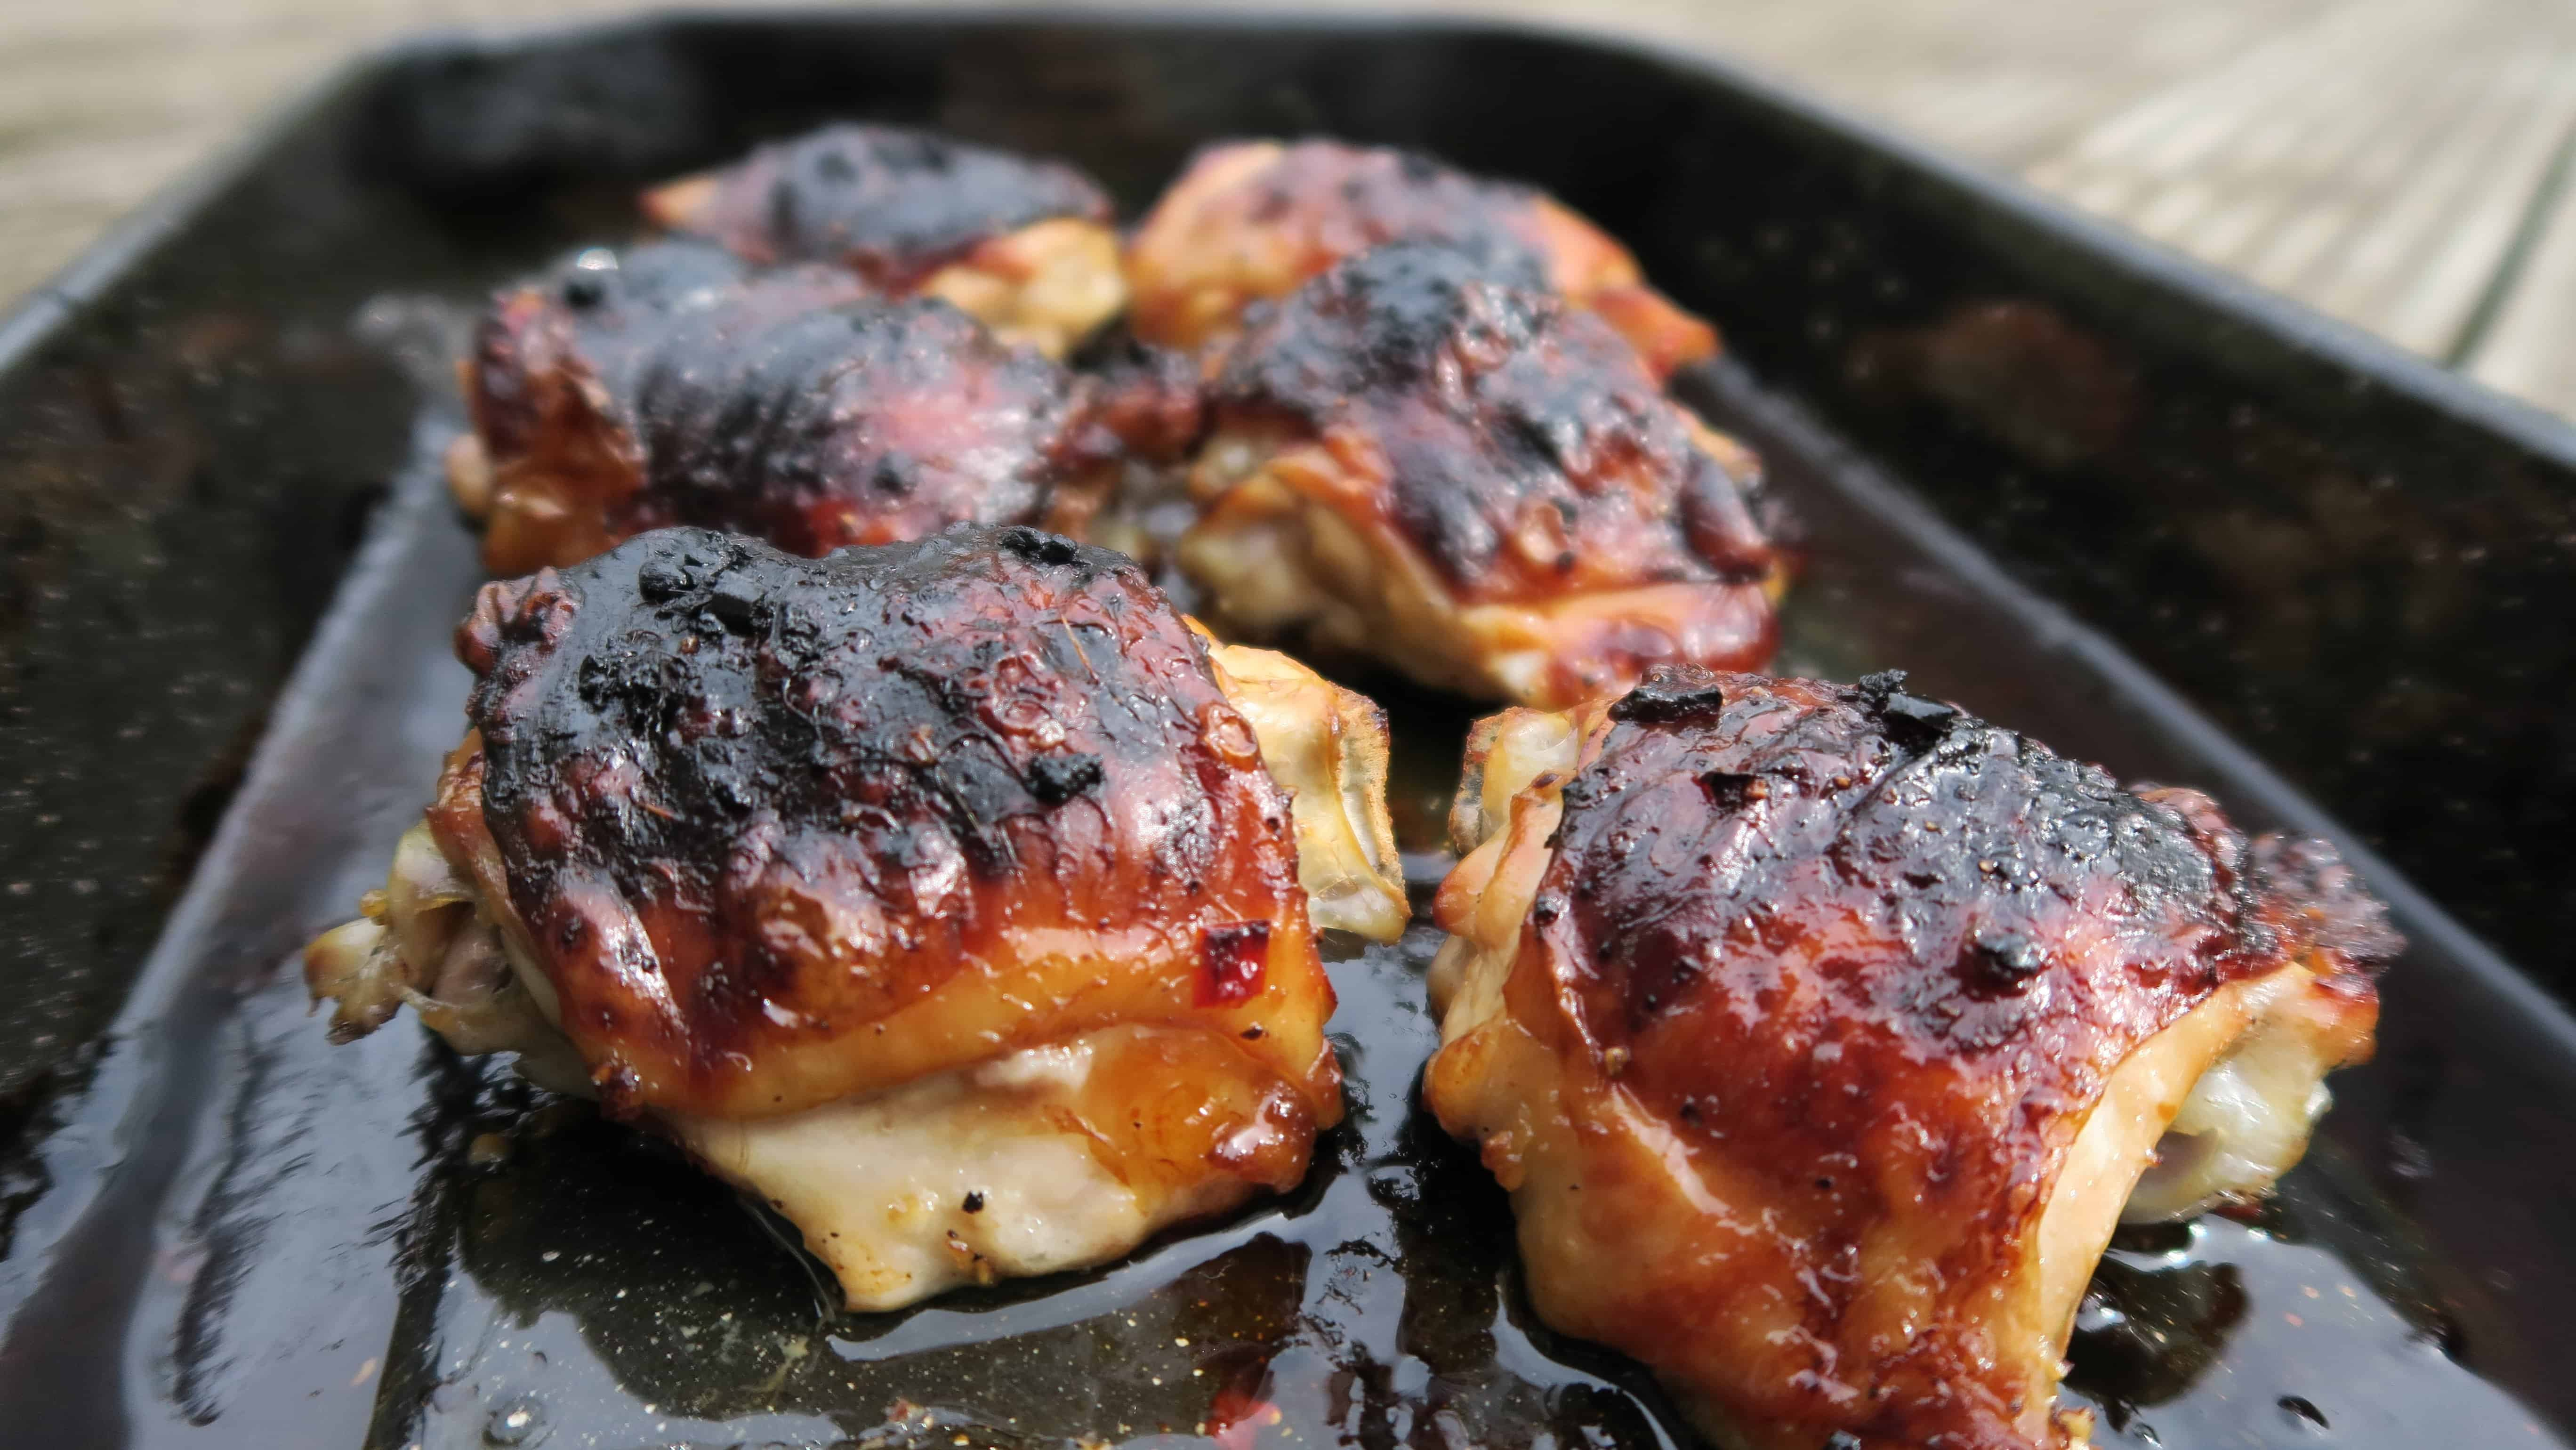 CHIPPA HONEY WORCESTER CHICKEN THIGHS (C) SARAH HOWELLS THE GLUTEN FREE BLOGGER.JPG (29)